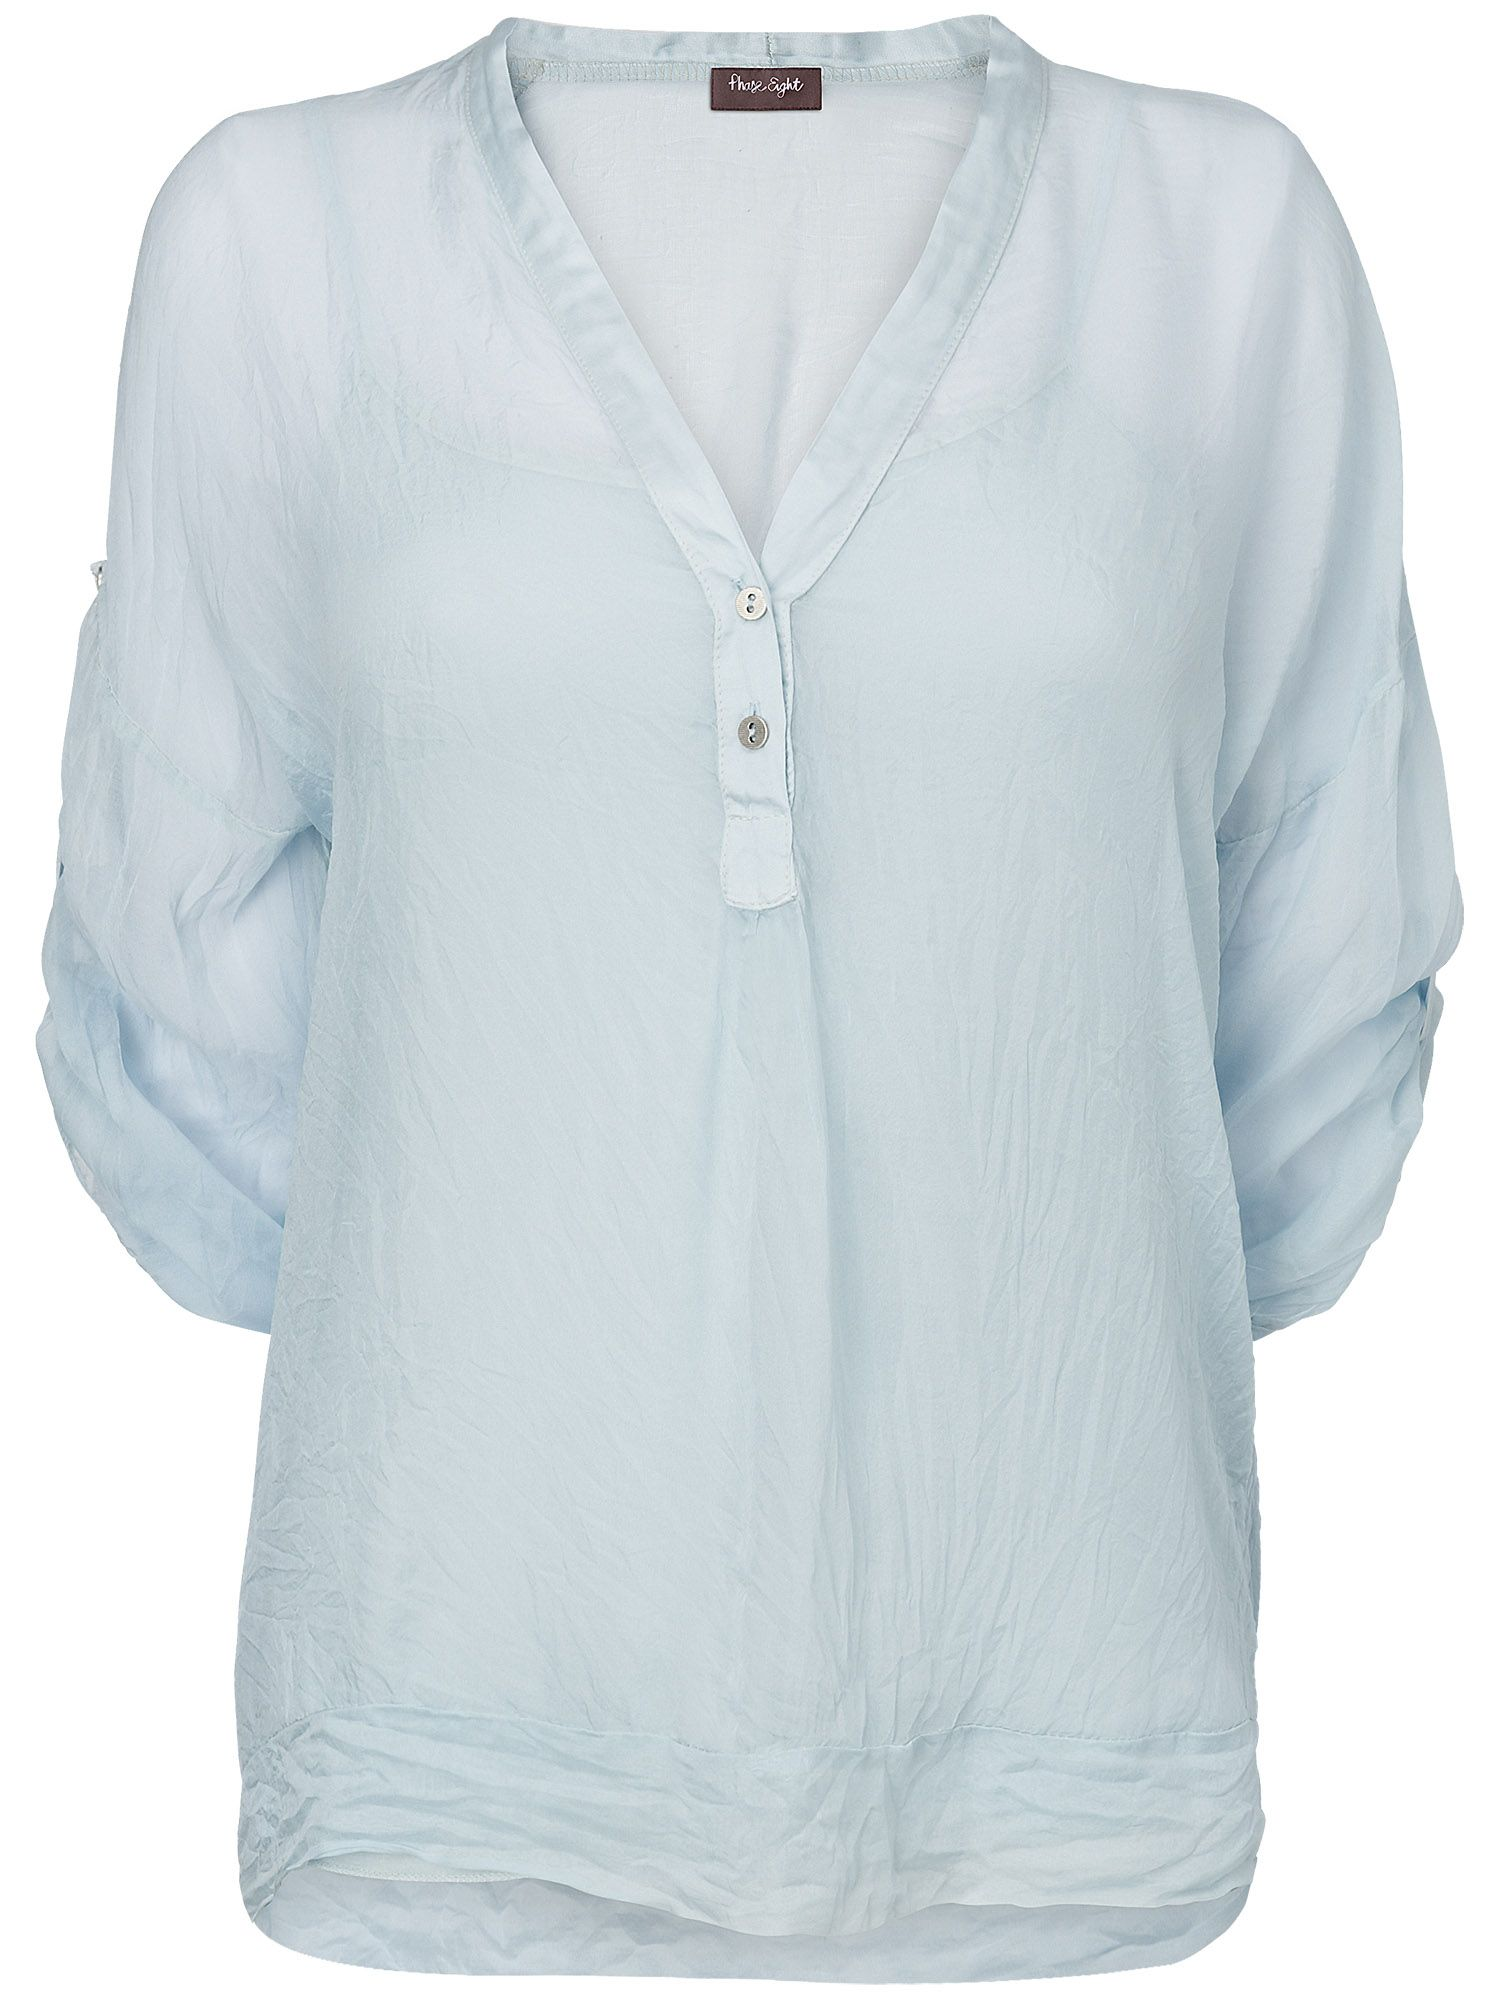 Kay silk shirt